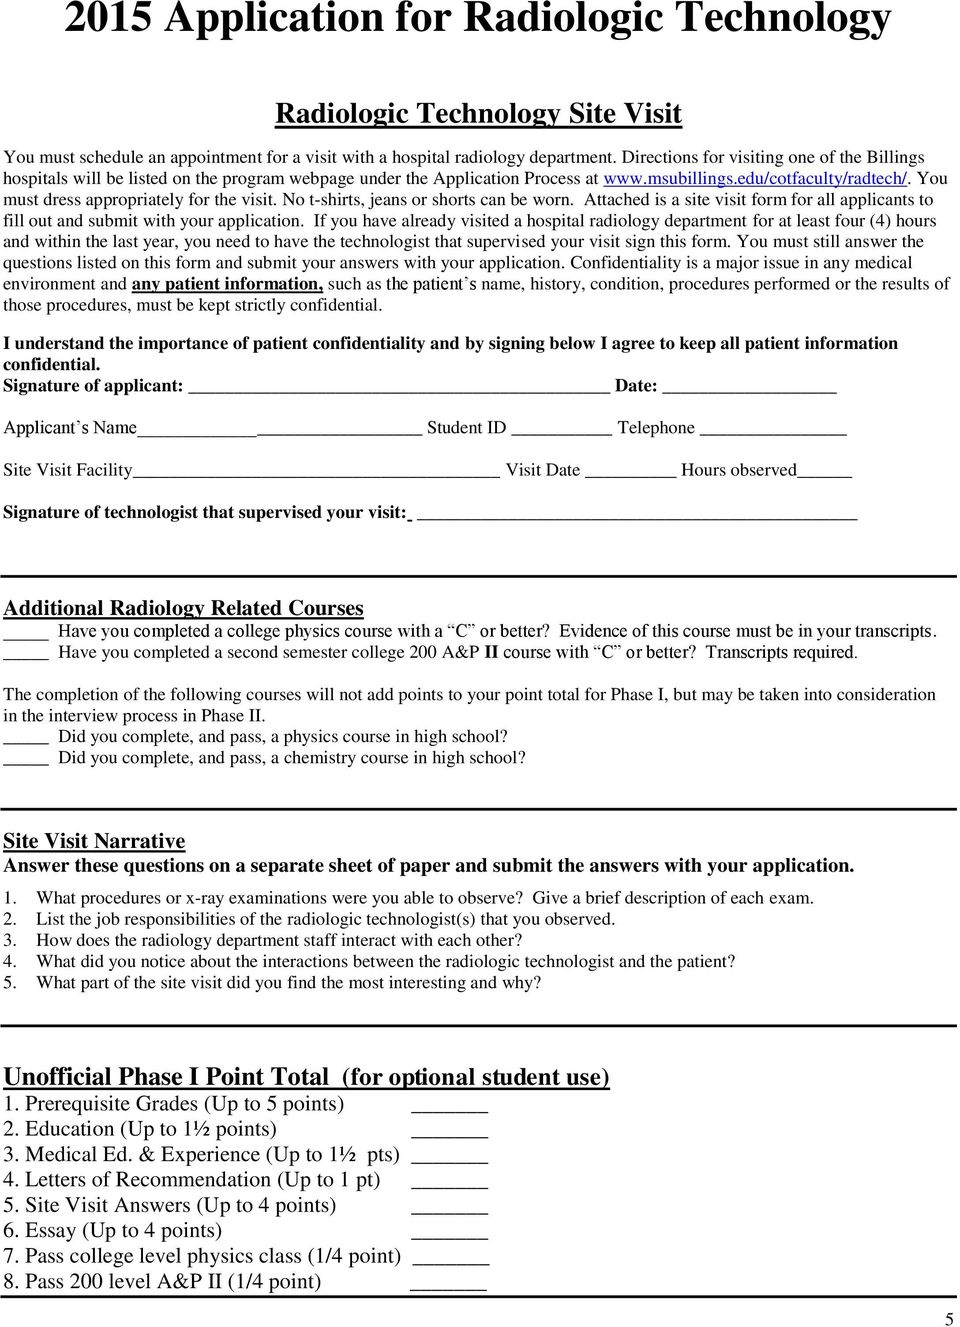 You must dress appropriately for the visit. No t-shirts, jeans or shorts can be worn. Attached is a site visit form for all applicants to fill out and submit with your application.